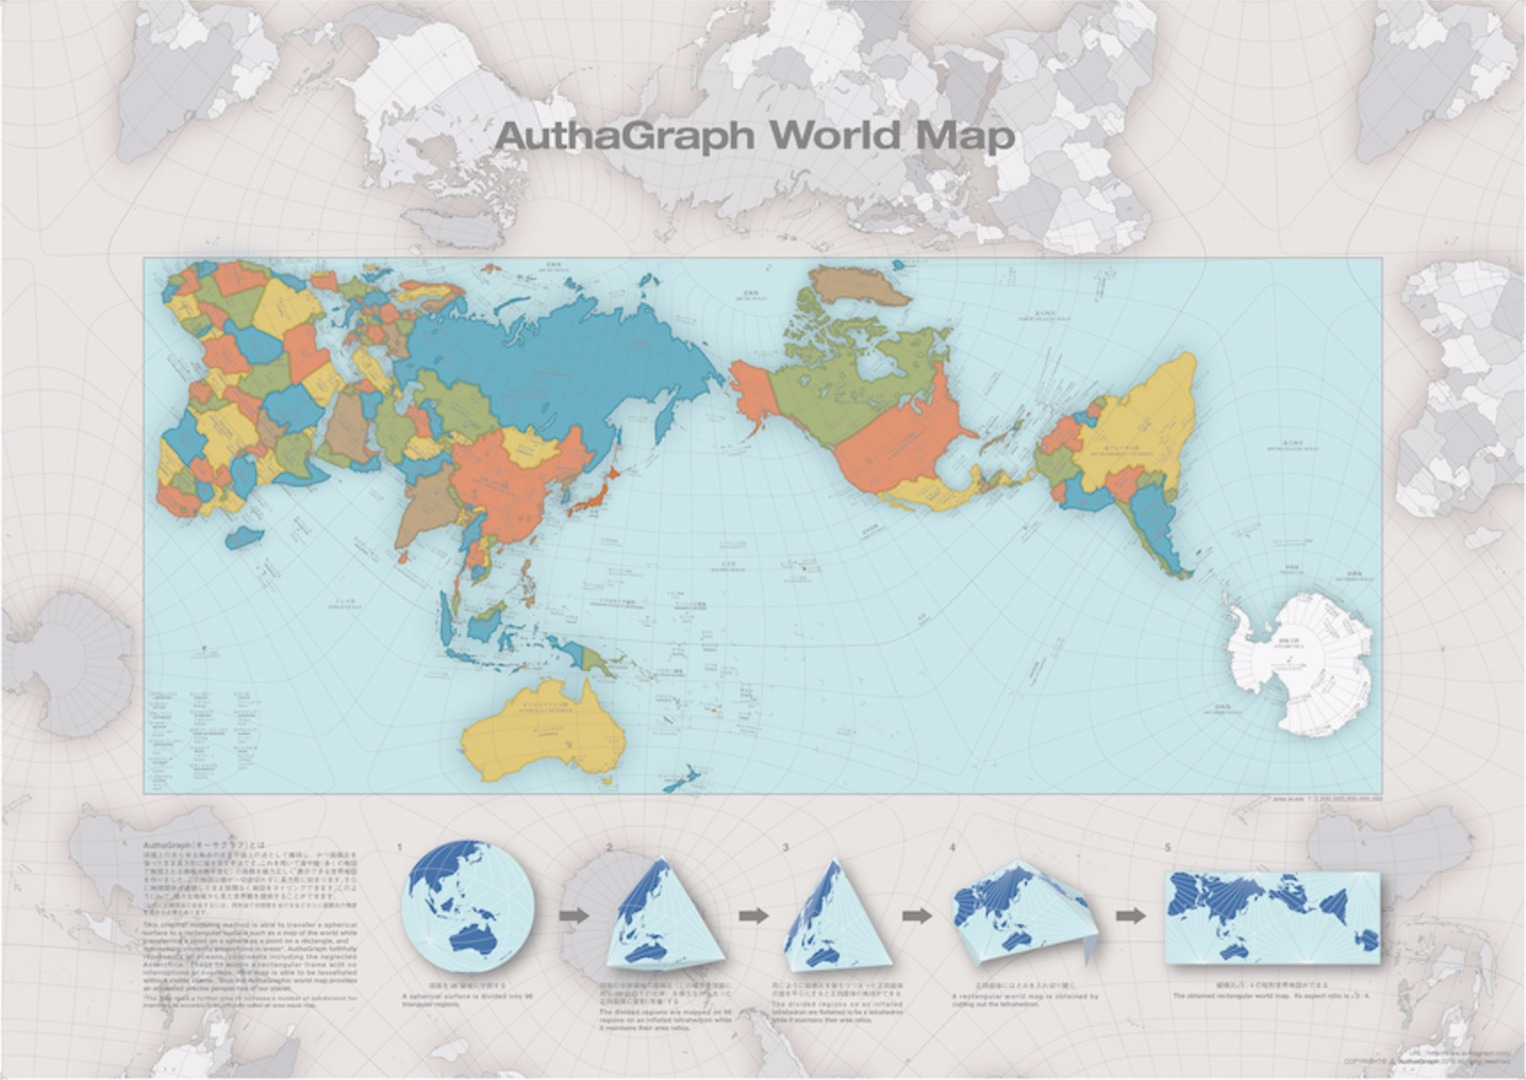 Size does matter: Authagraph World Map turns the Earth into